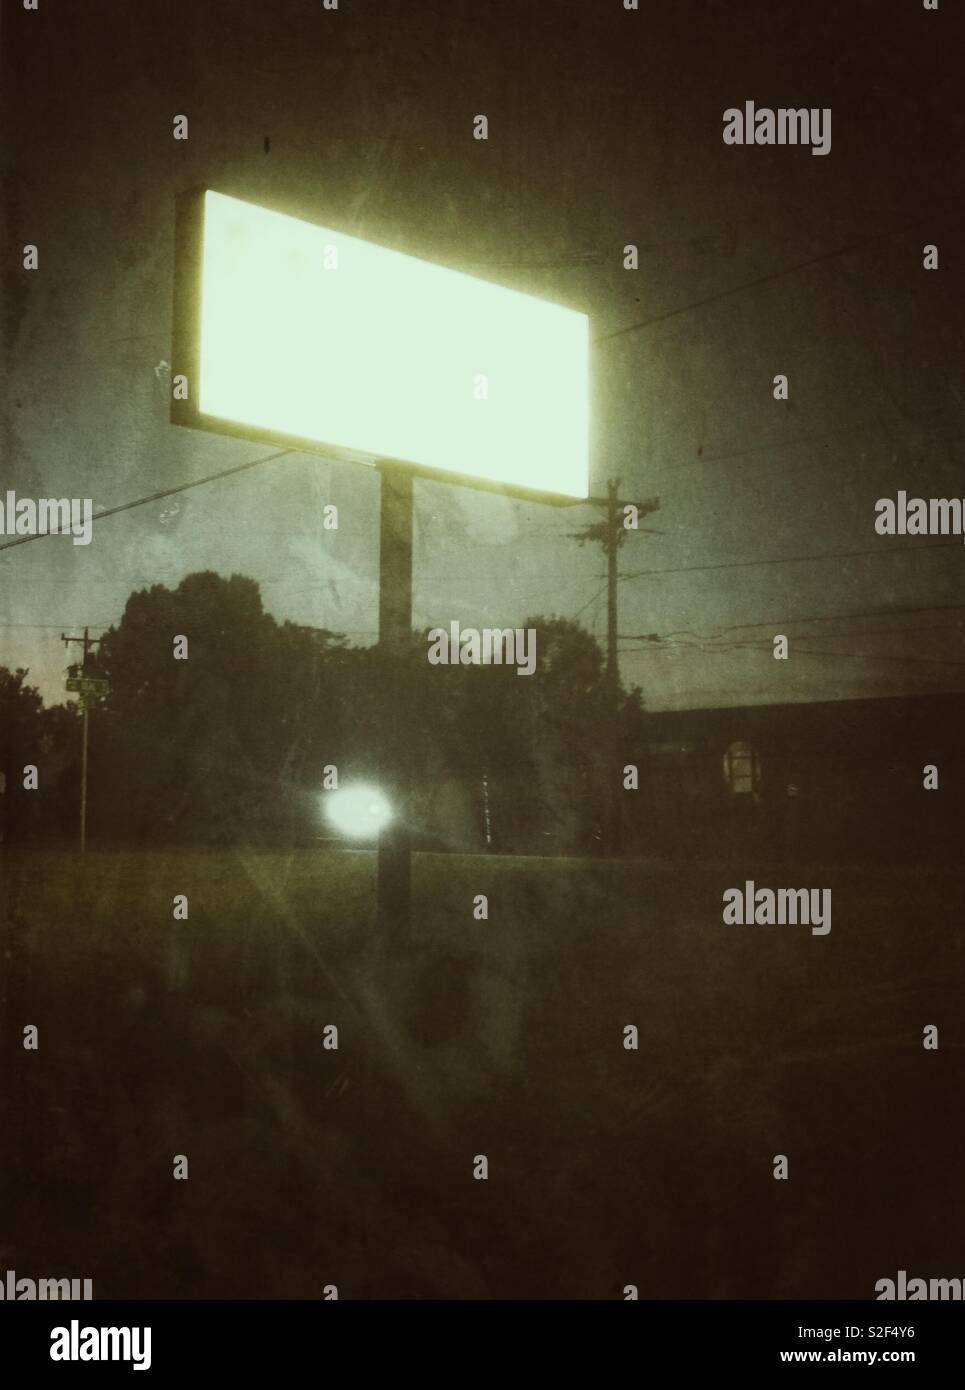 Monochromatic grunge photo of blank, eerie lighted store sign at twilight - Stock Image